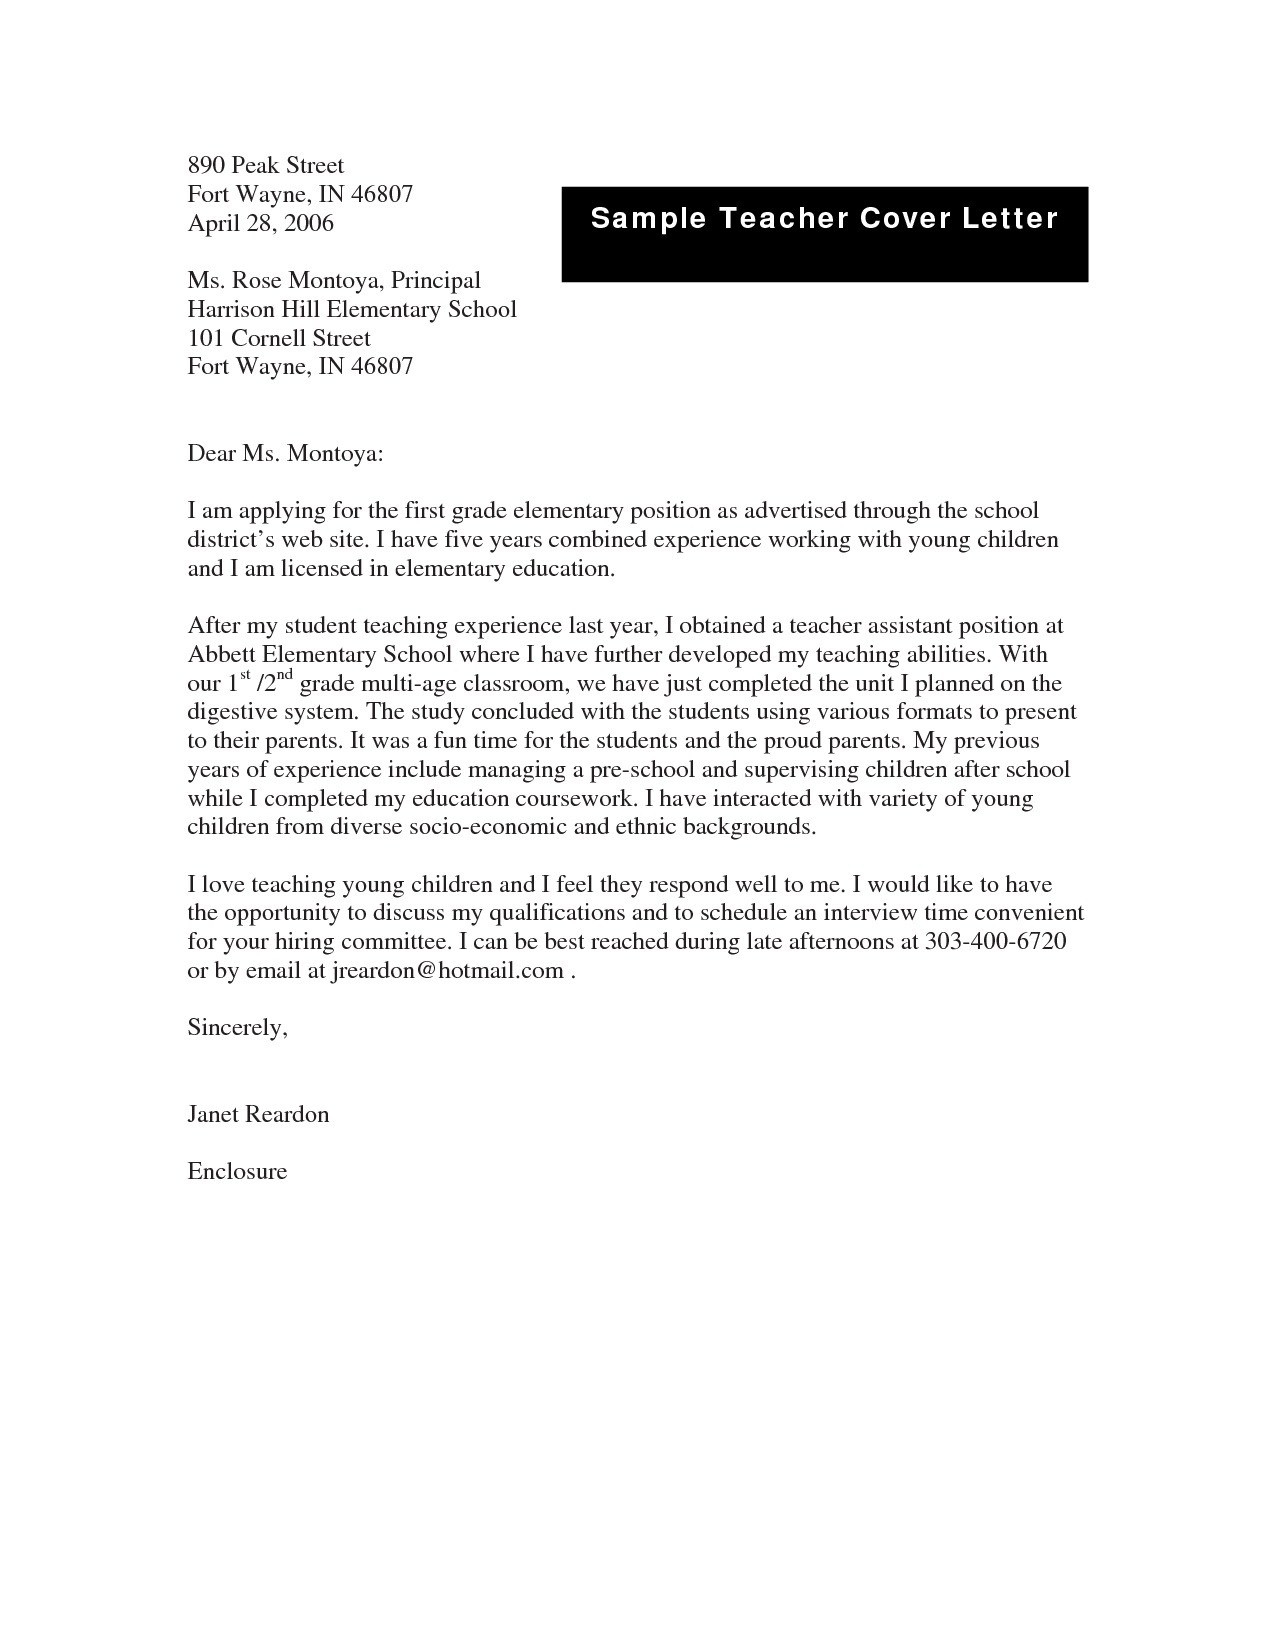 Formal Letter Format To A Teacher | World Of Example intended for Formal Letter Format To A Teacher 20036